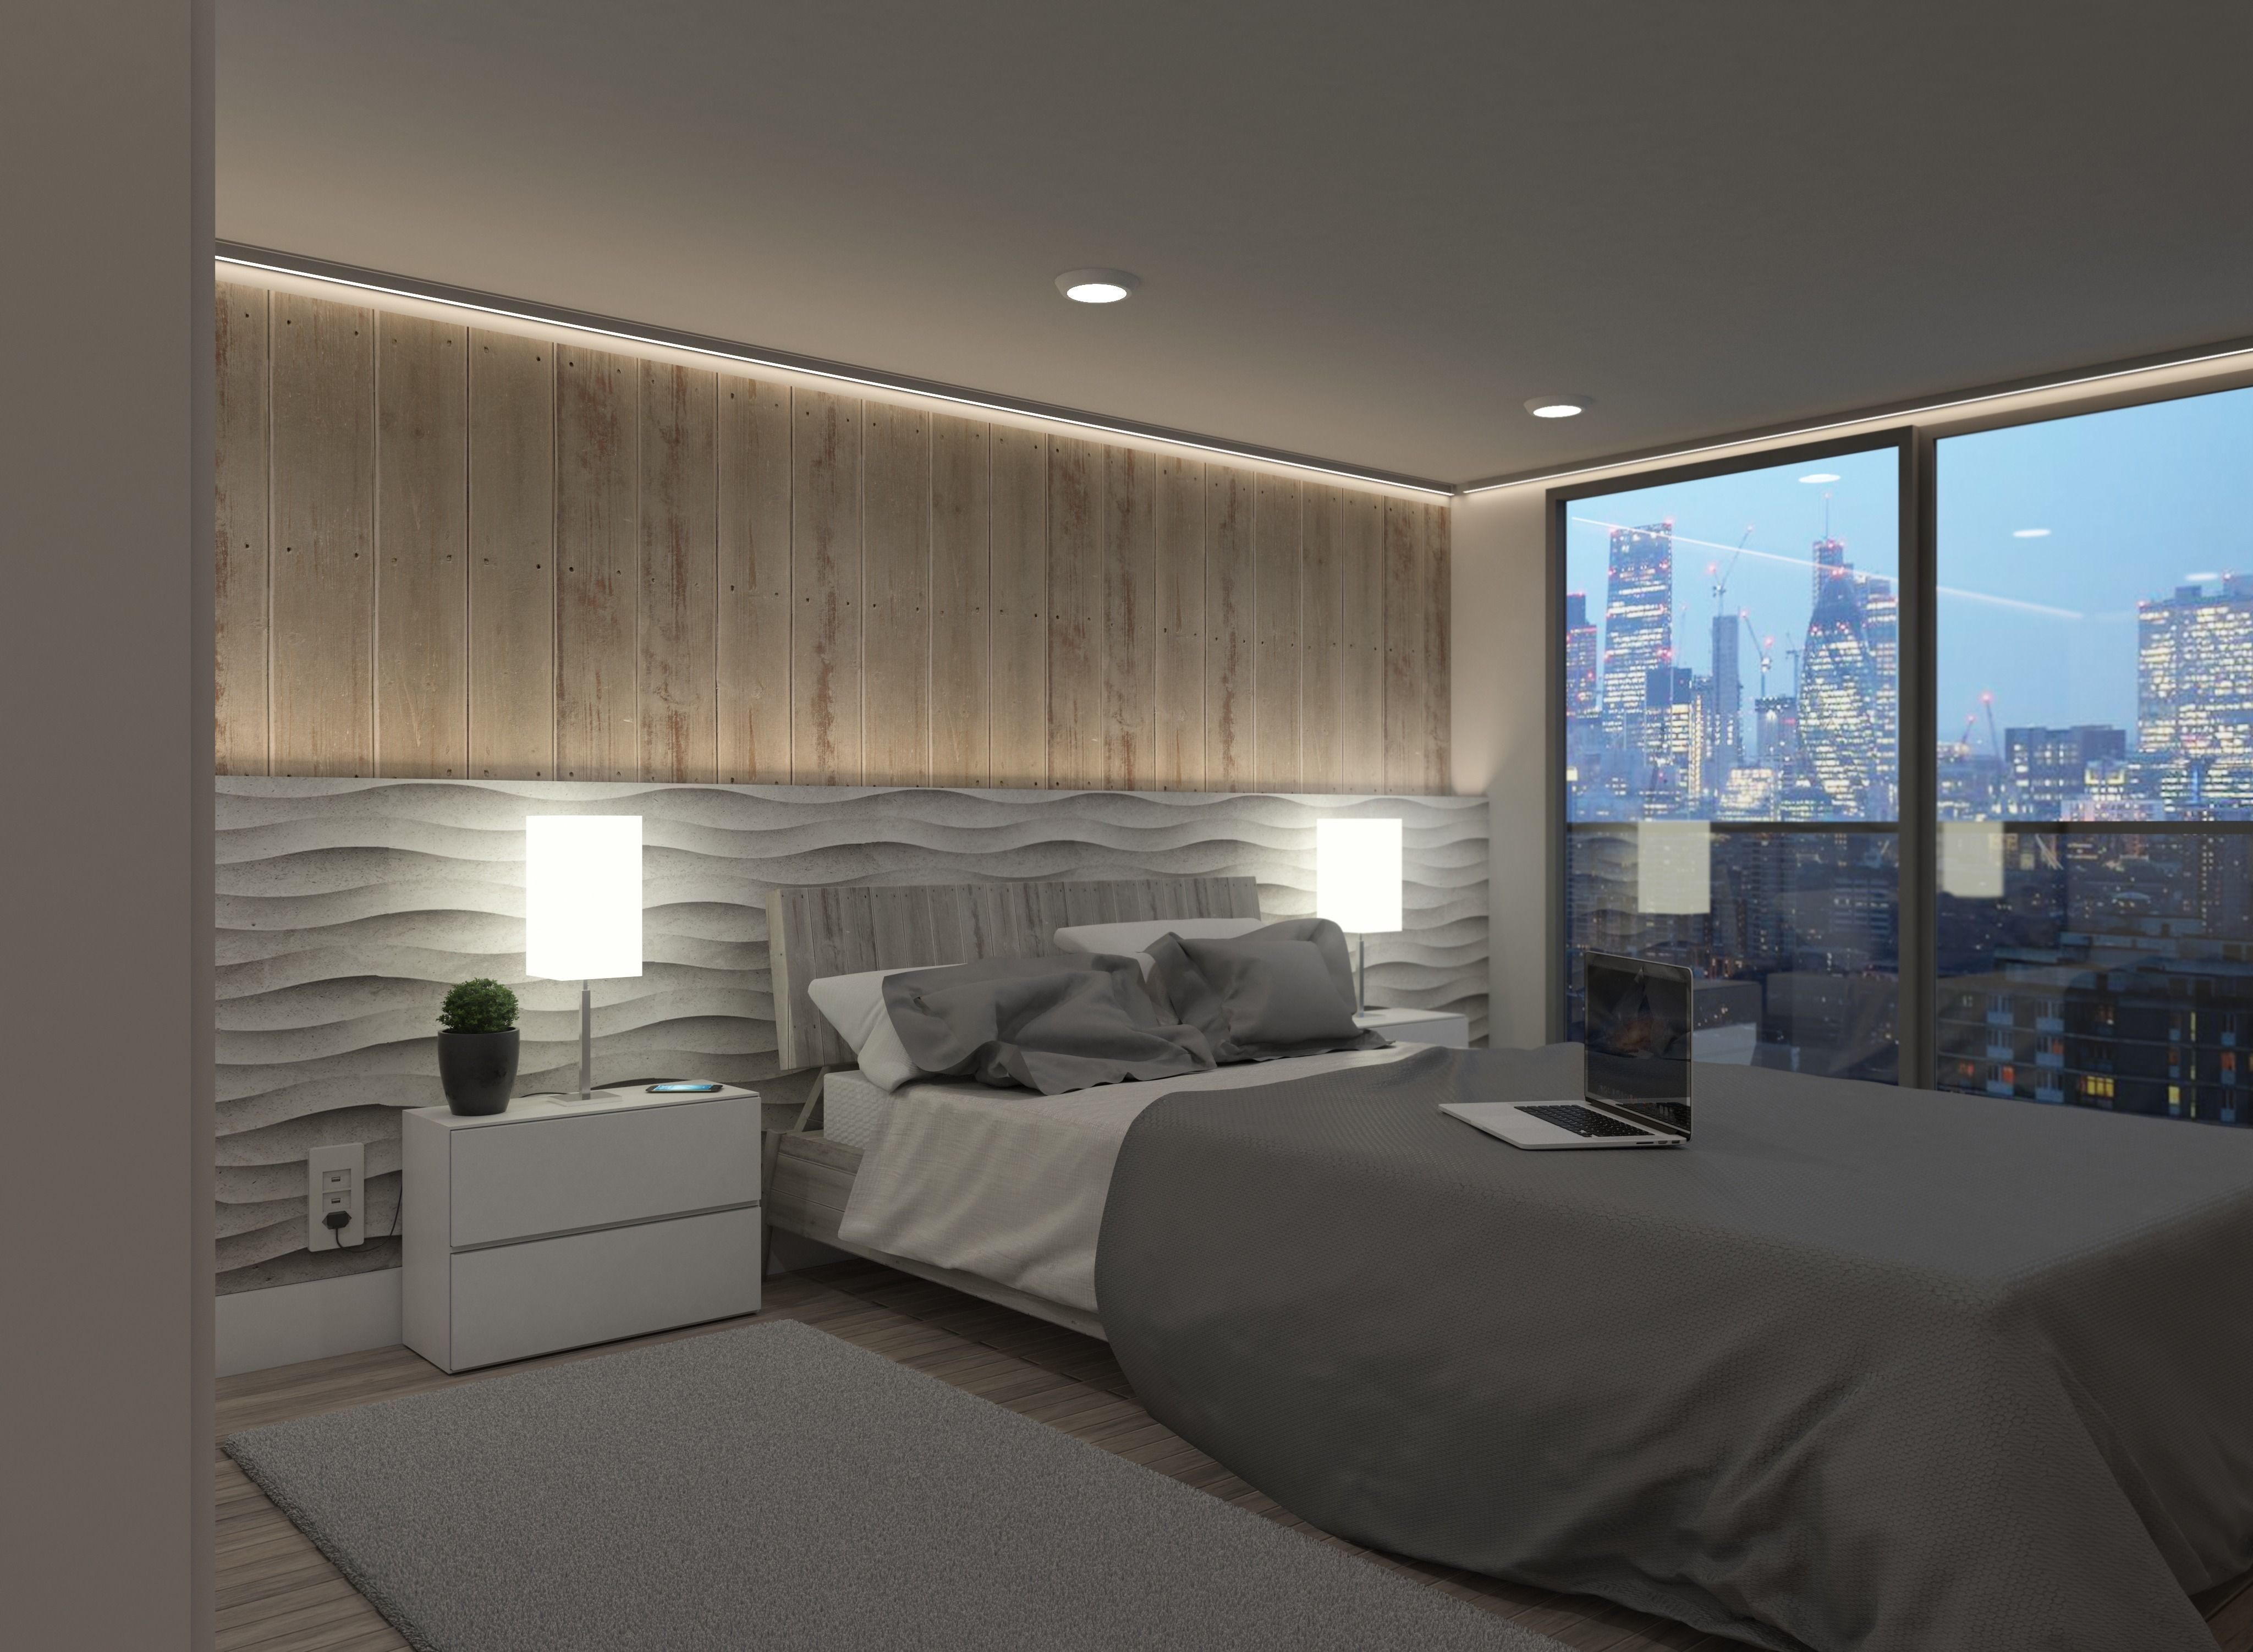 Hotel Room Vray Ready To Render 4k 3d Model Cgtrader